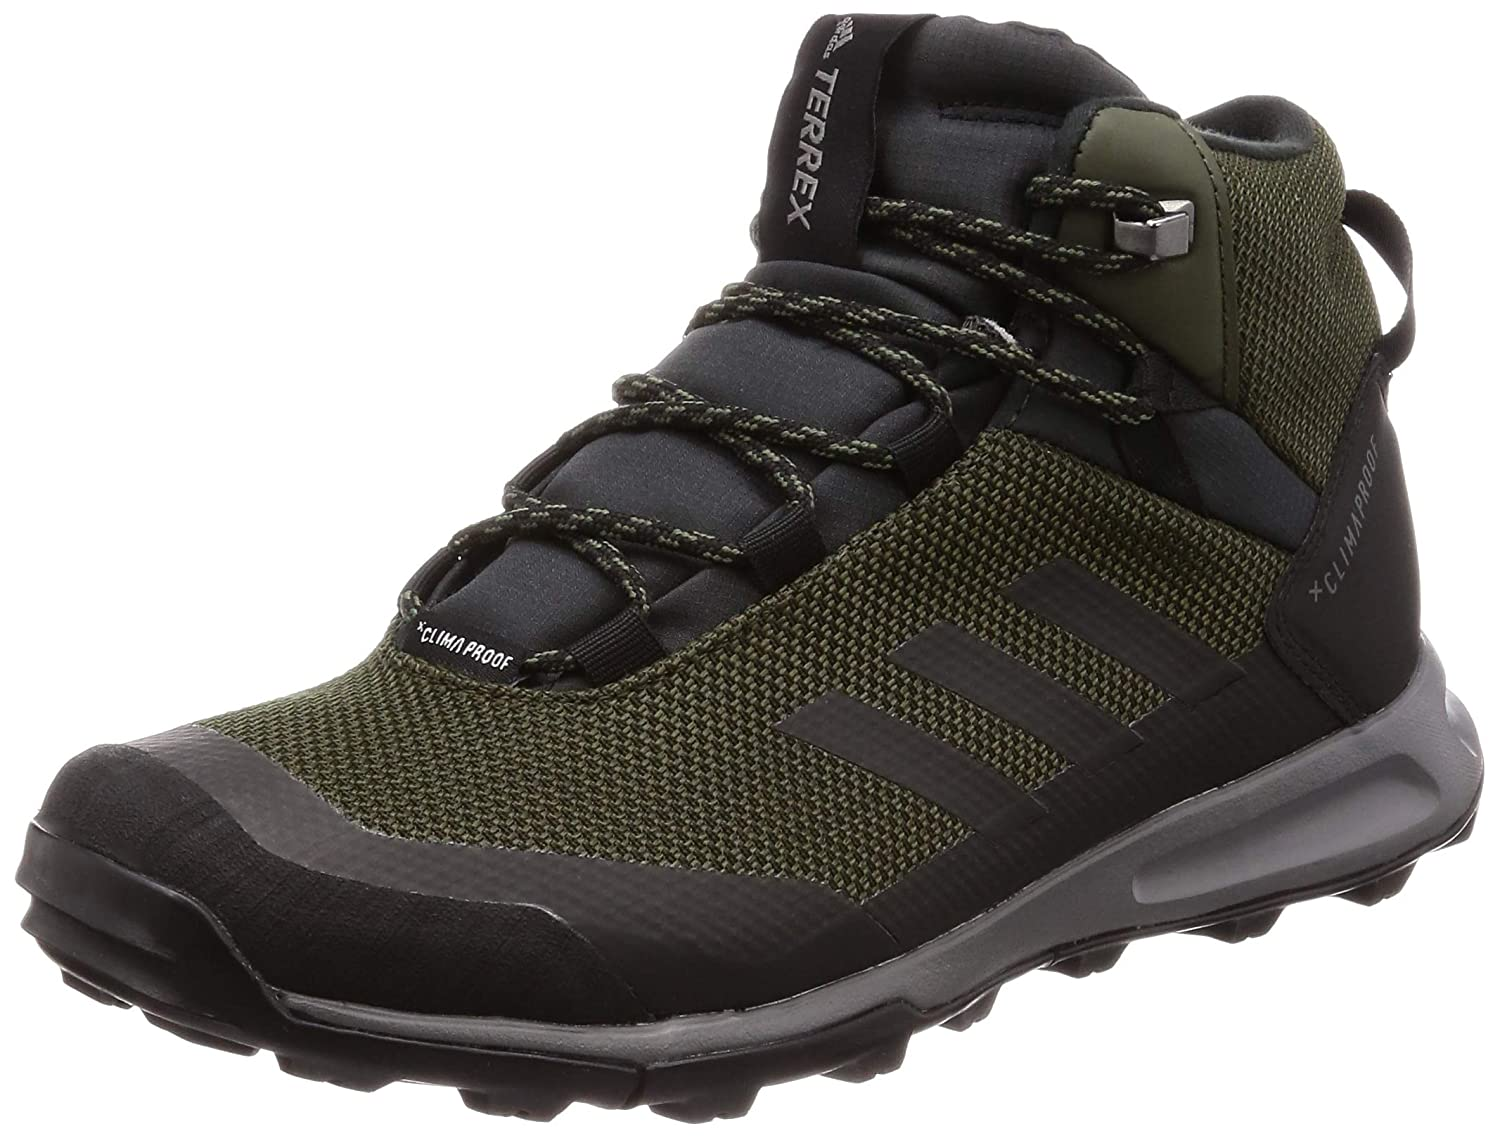 9c8a4dec61c adidas Men's Terrex Vivid Mid Climaproof High Rise Hiking Shoes ...